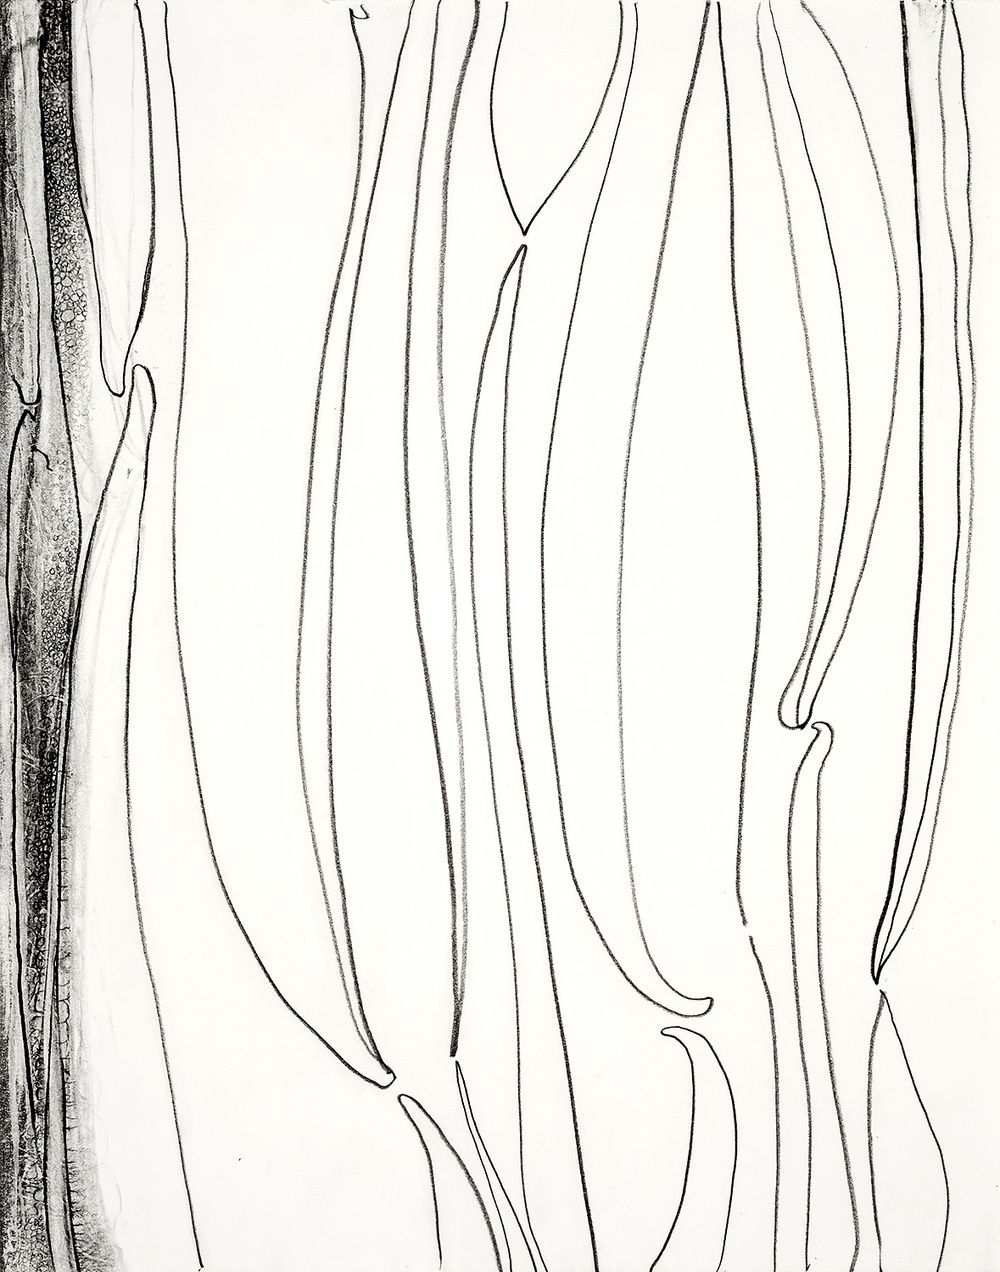 """Brian Wood <br> """"Cement Line"""" <br> Graphite on paper <br> 14 x 11 in."""